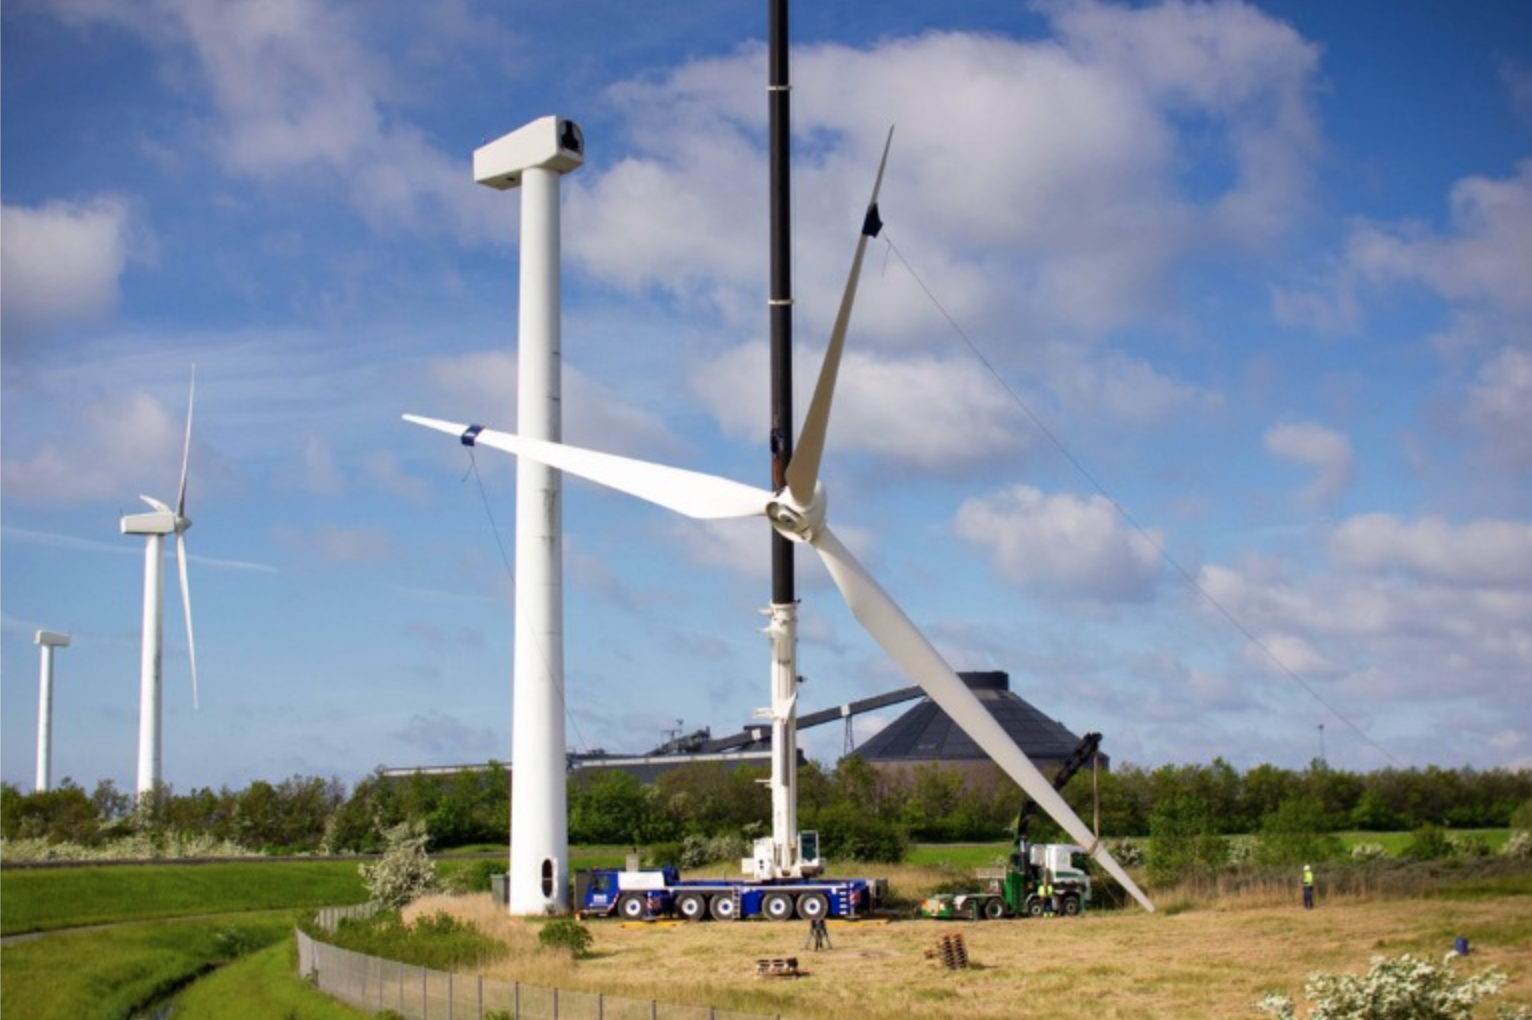 Wind turbines are expected to generate 1.2 Million Kilo Watts of power per year